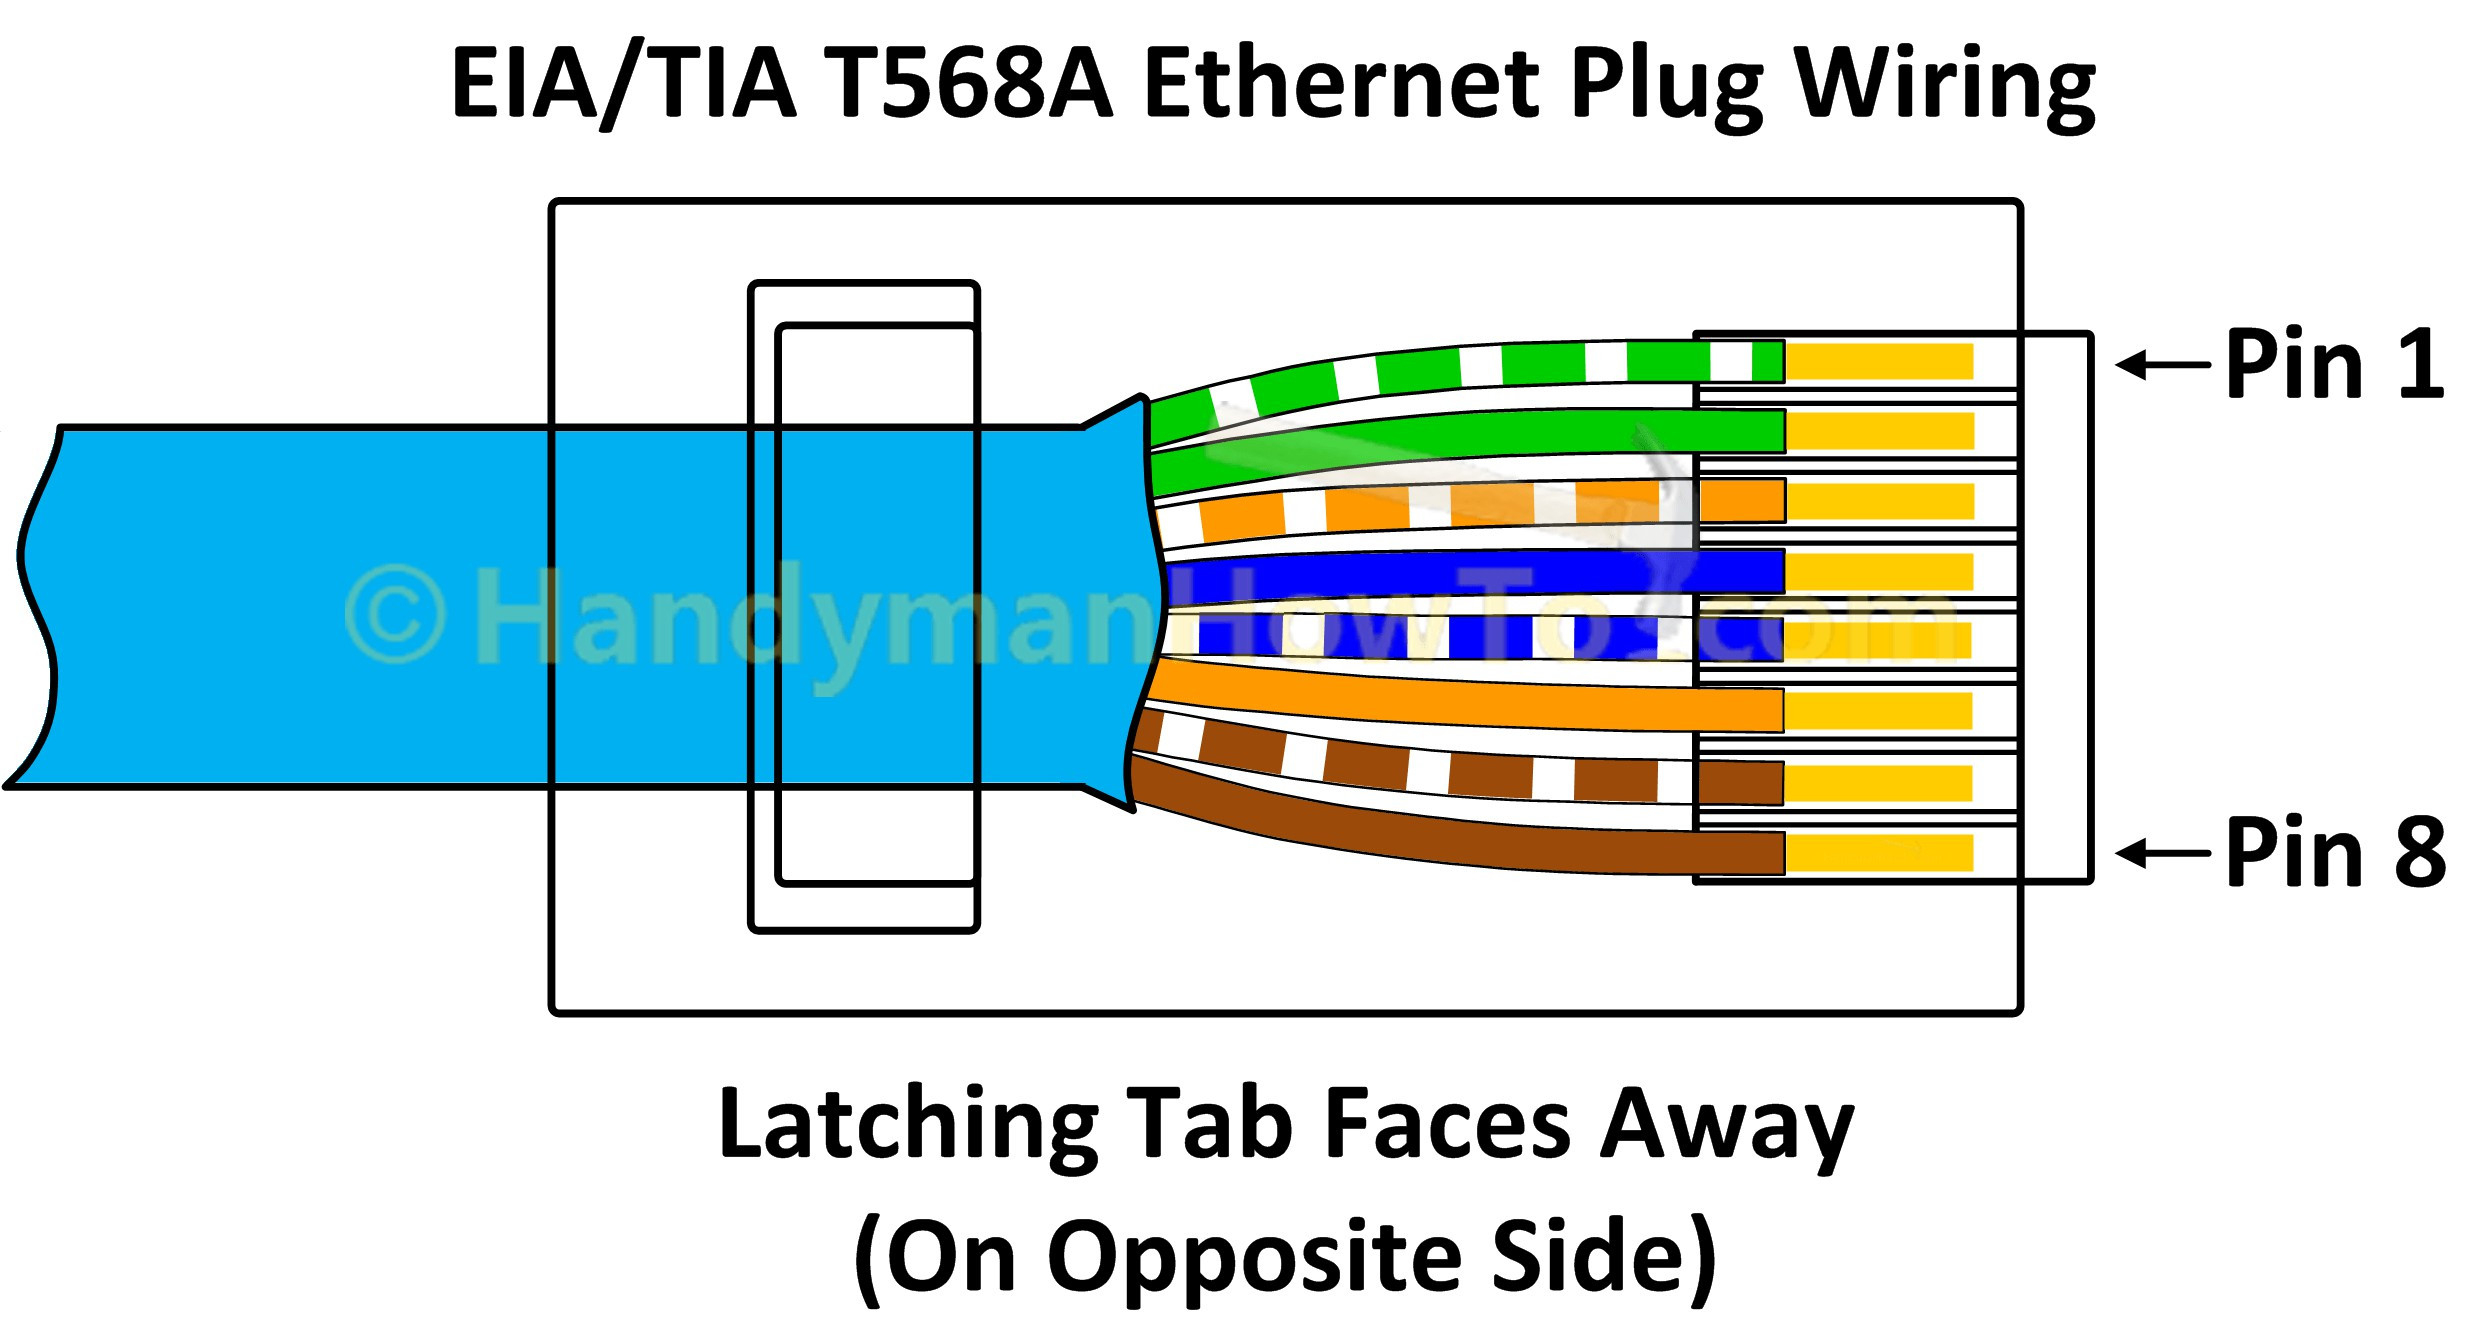 Rj45 Wiring Guide - Today Wiring Diagram - Wiring Diagram For Usb Rj11